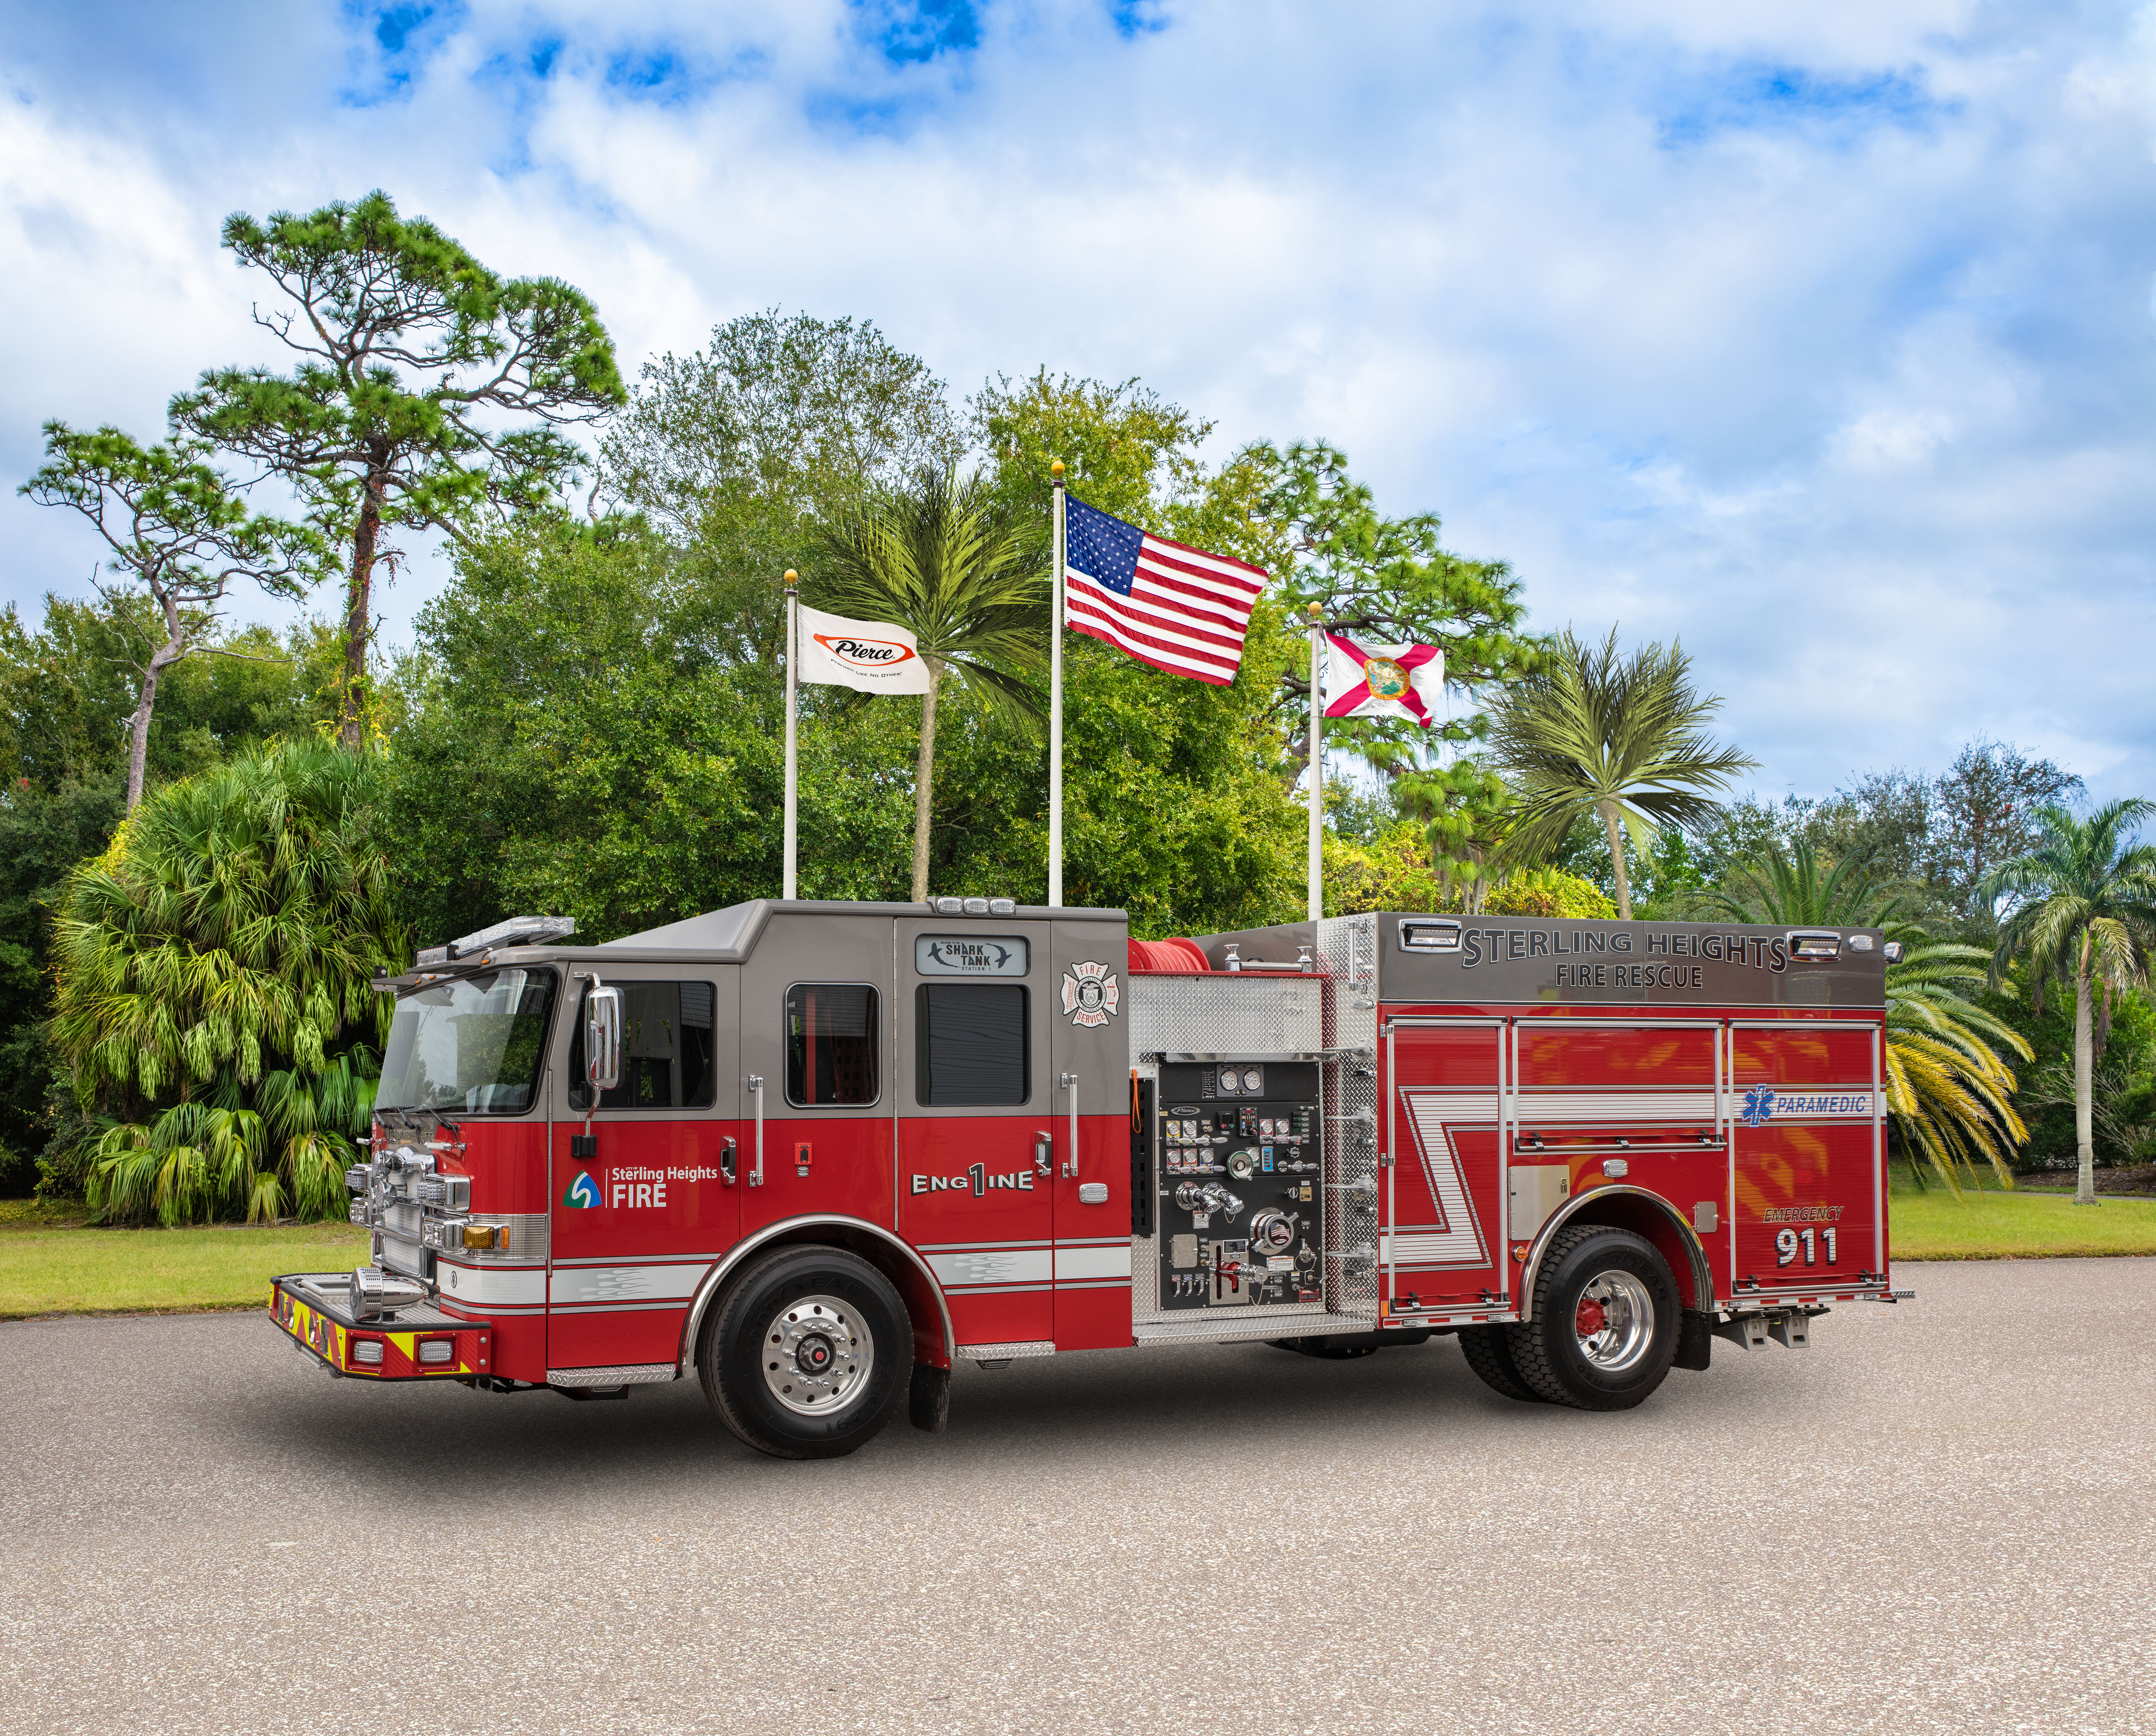 City of Sterling Heights Fire Department - Pumper